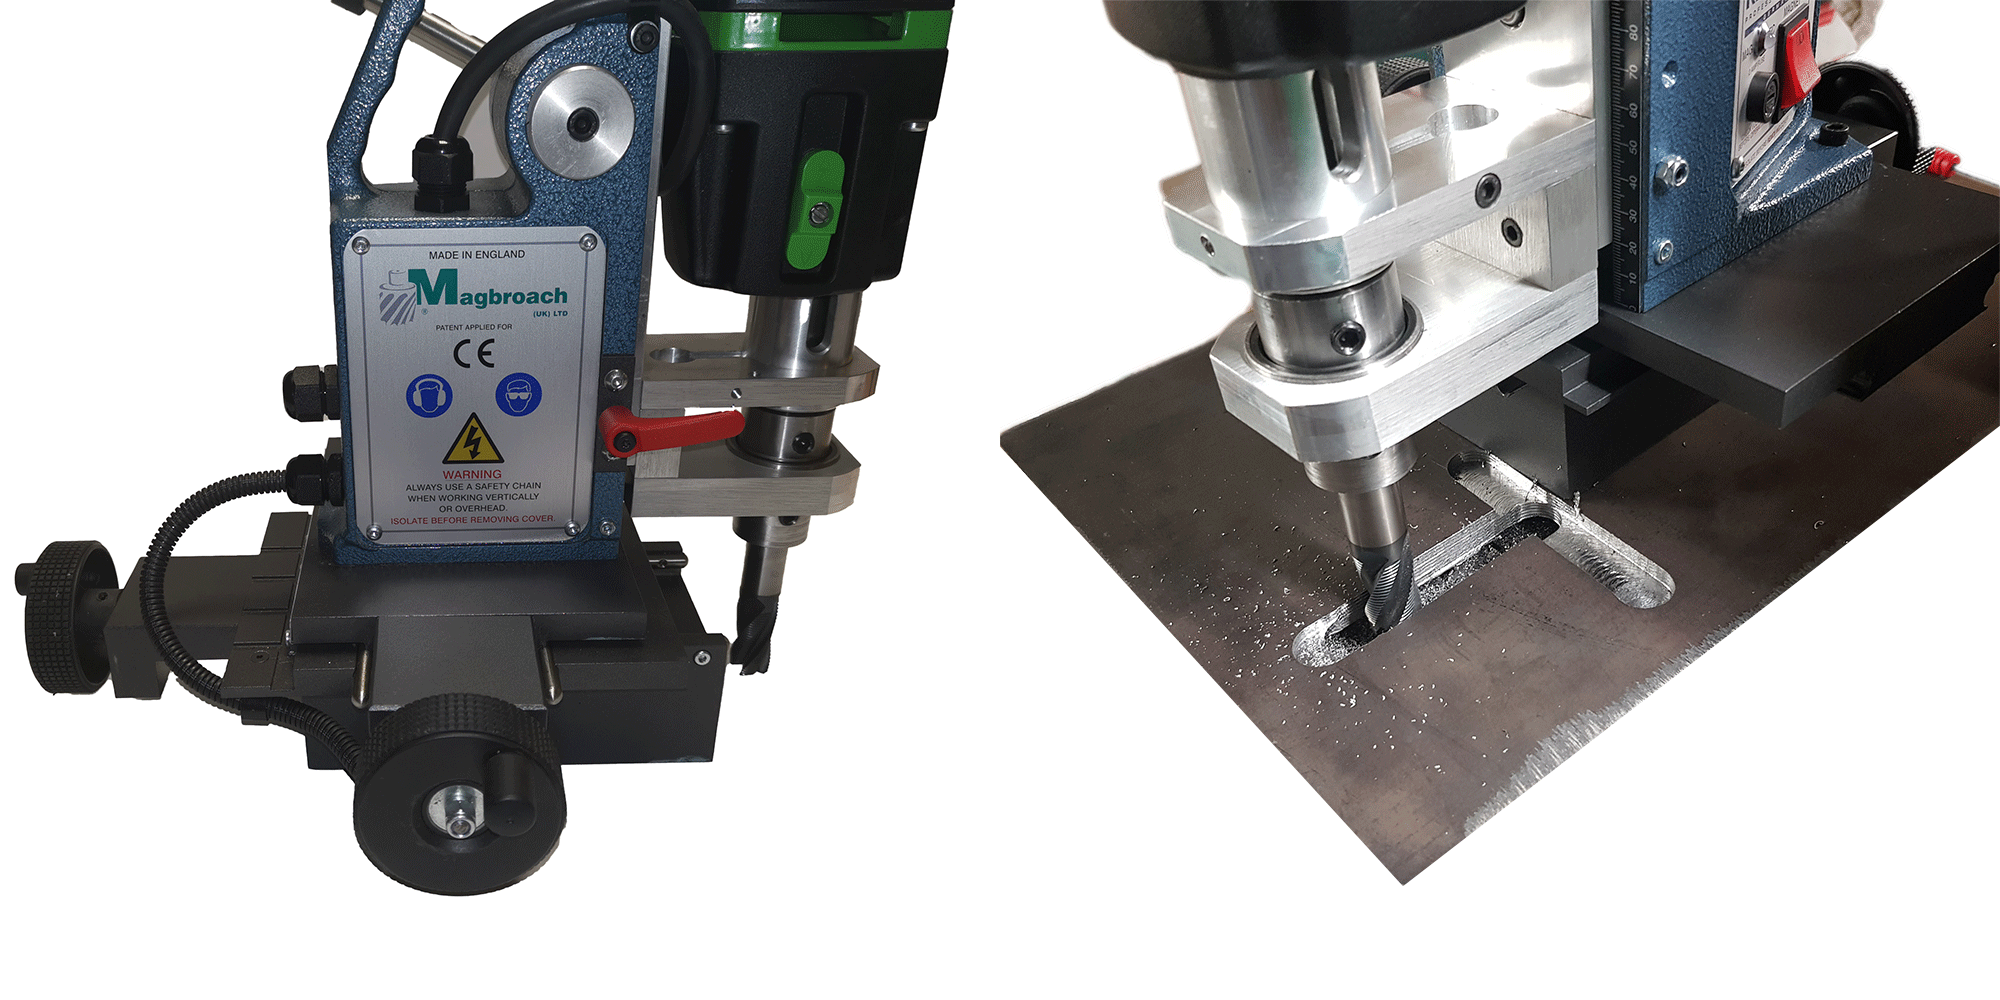 Three Axis XY Magnetic Drilling and Tapping Machine